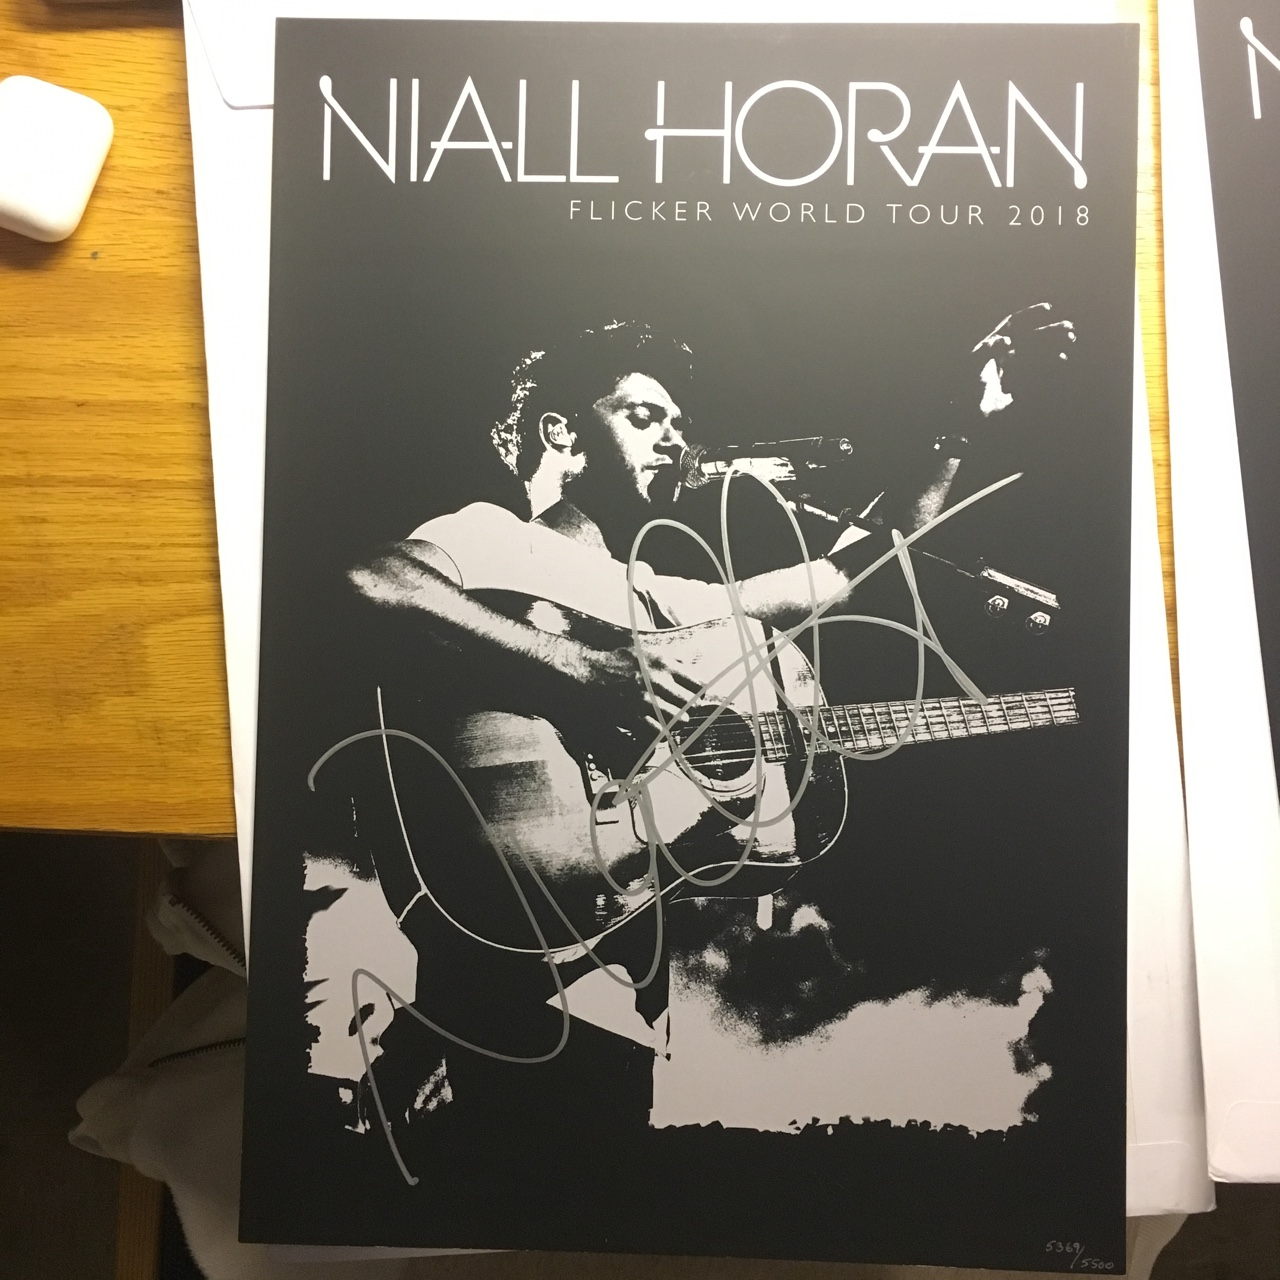 Niall Horan Tour Flicker 2018 Poster Authentic Autograph With Poster Number VIP